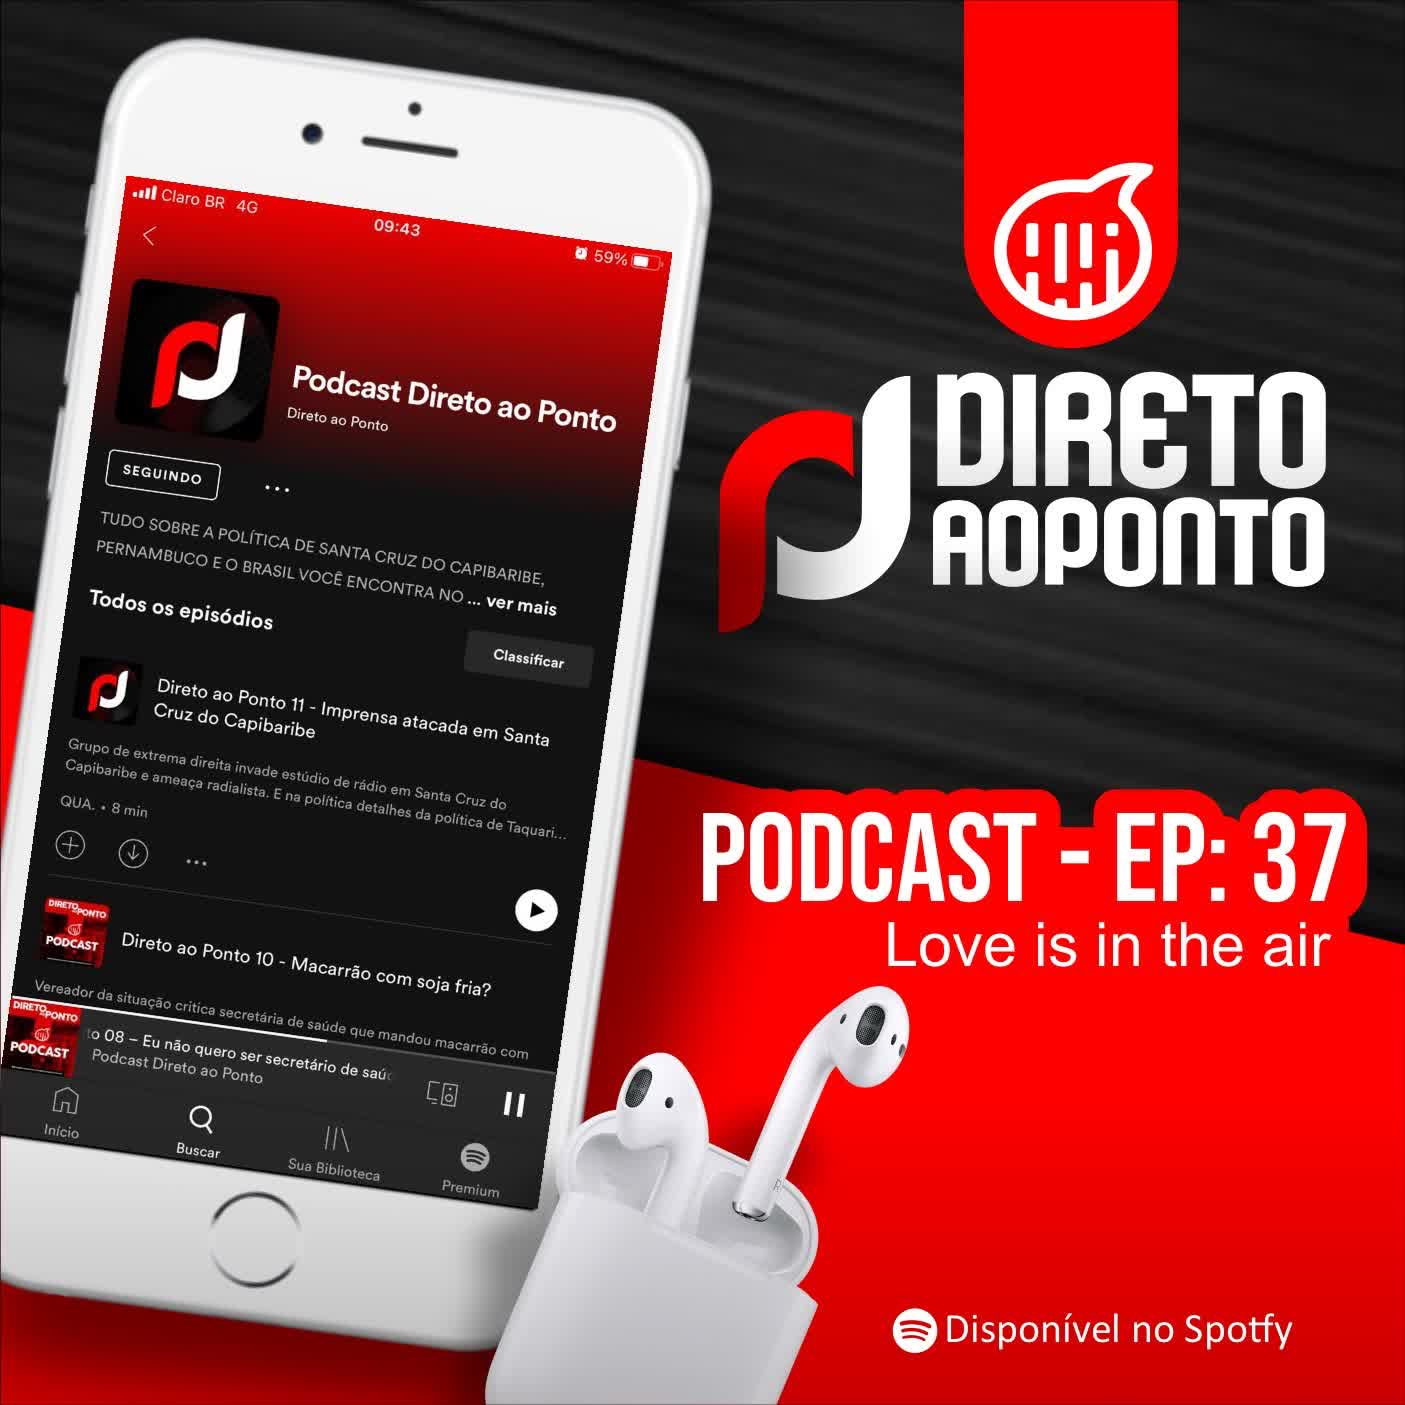 DPCAST 37 - Love is in the air